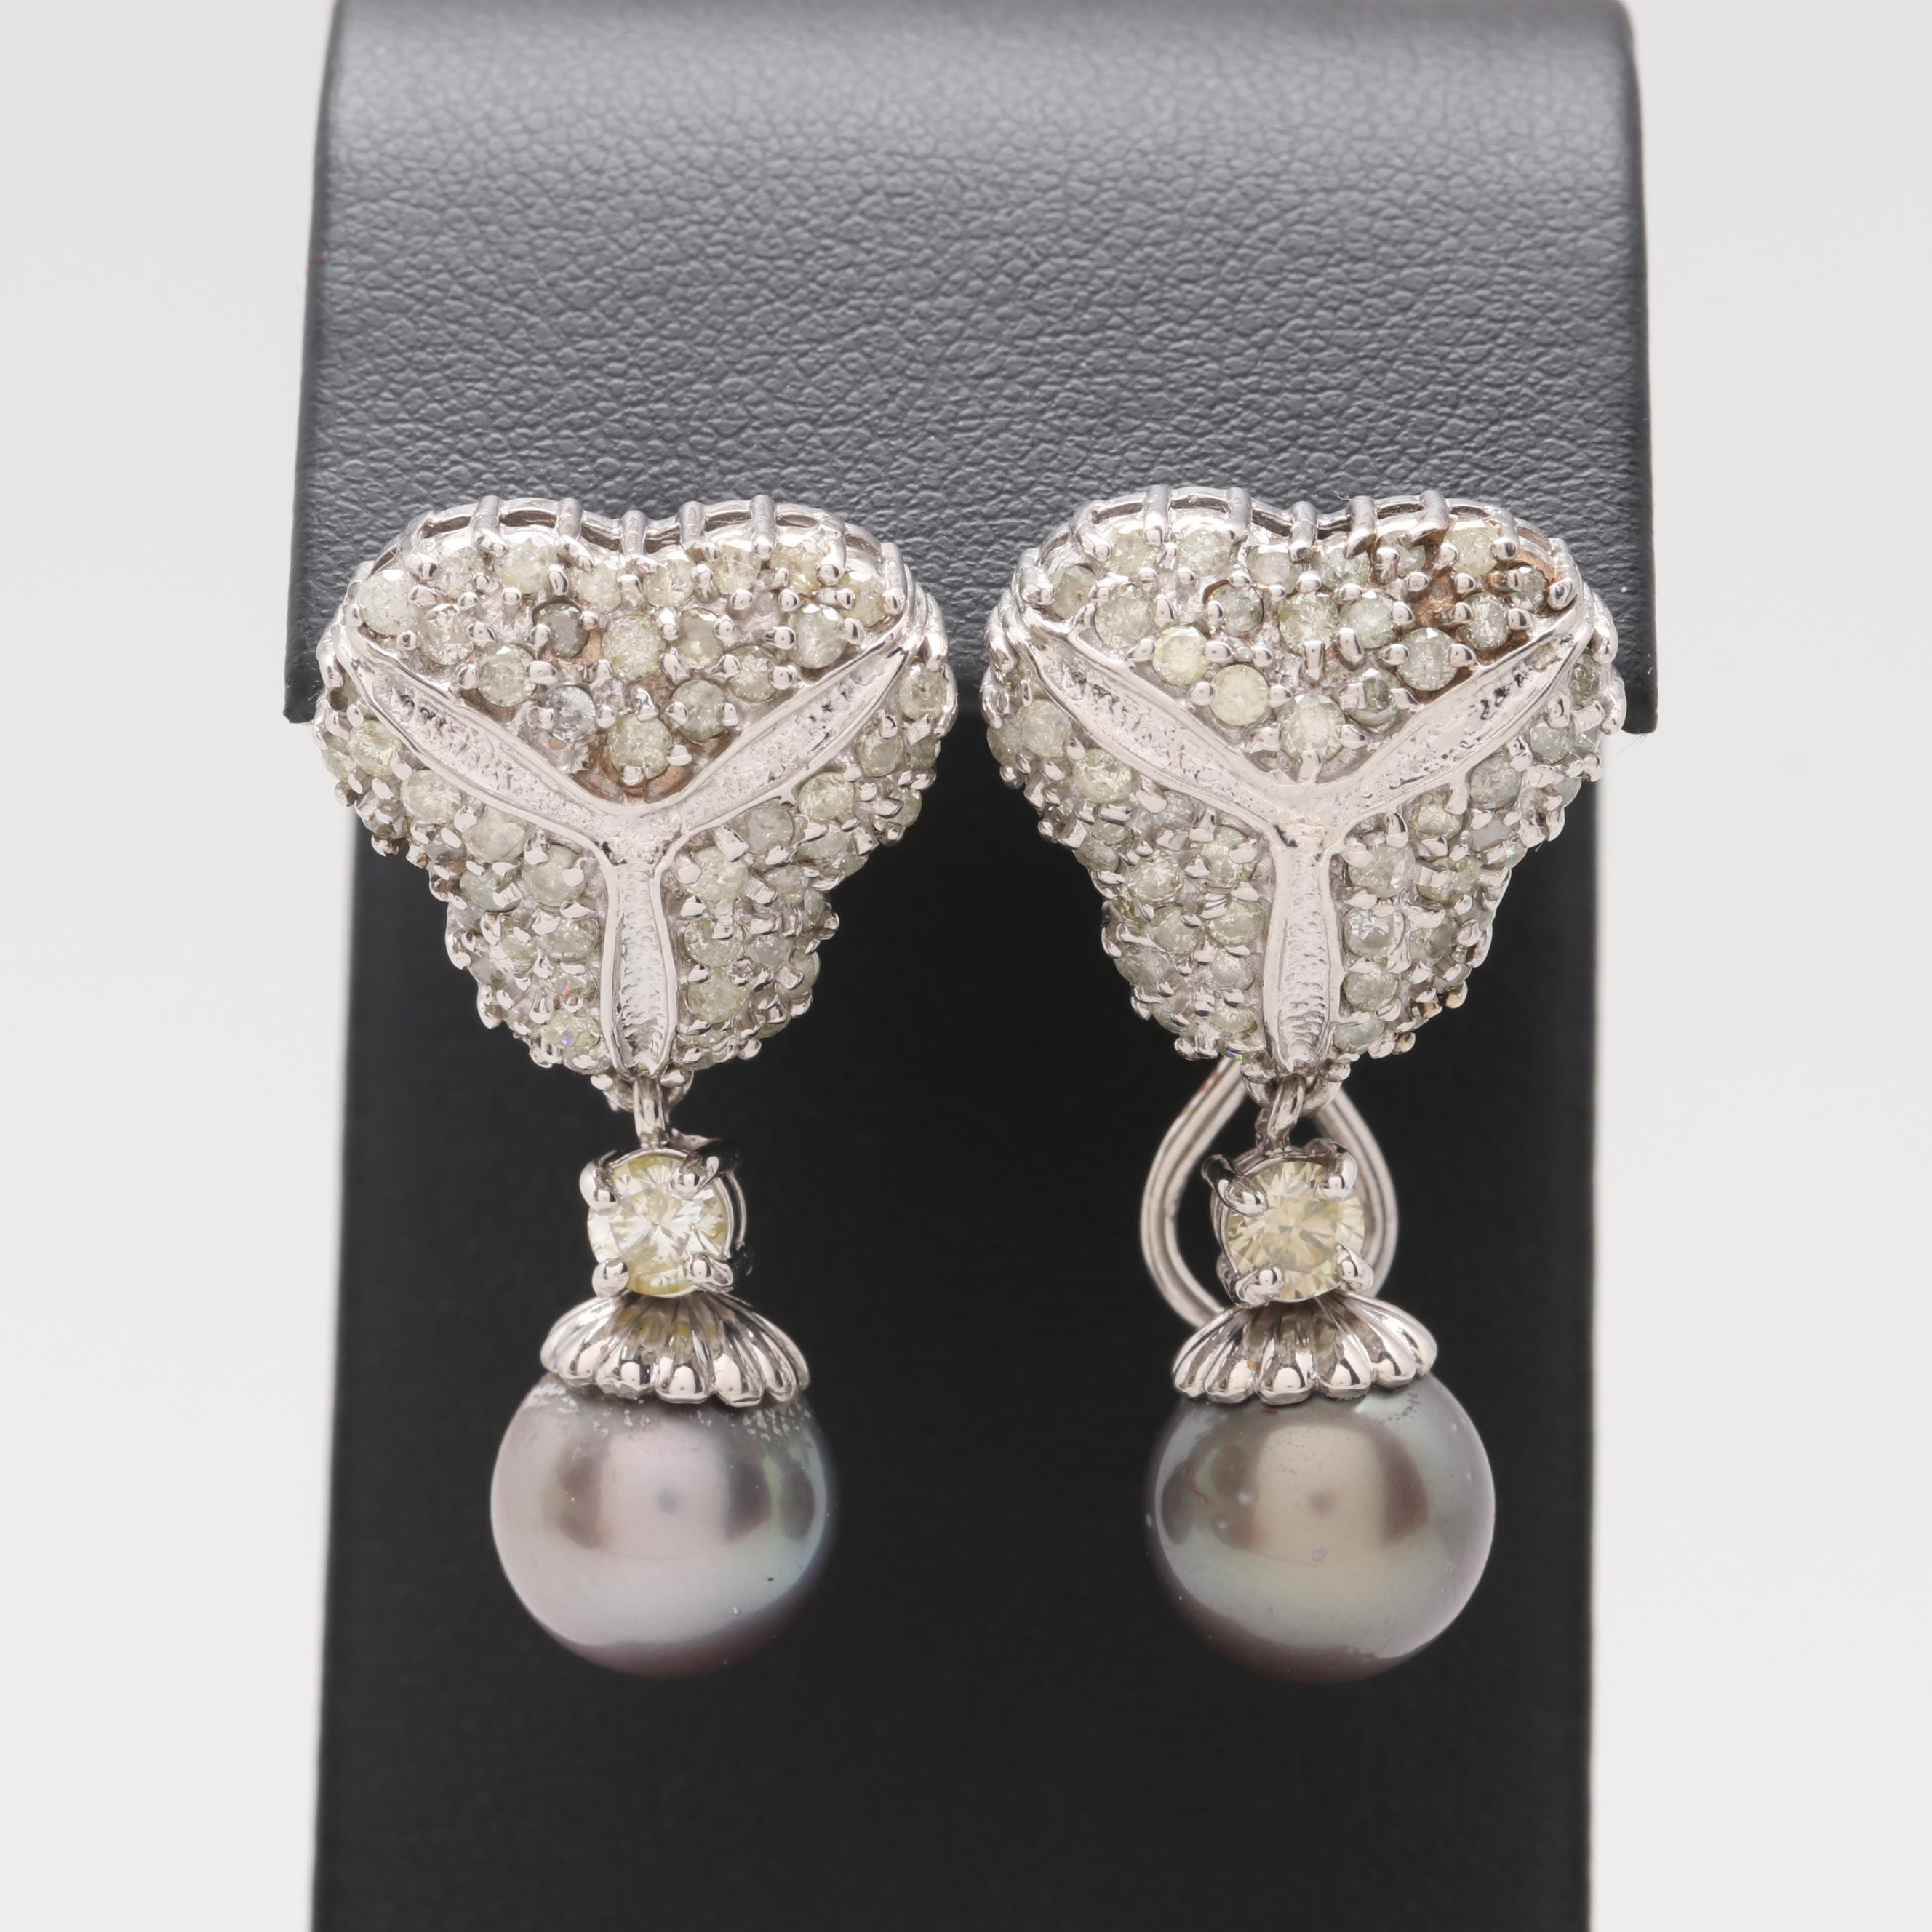 14K White Gold Cultured Pearl and 3.08 CTW Diamond Earrings